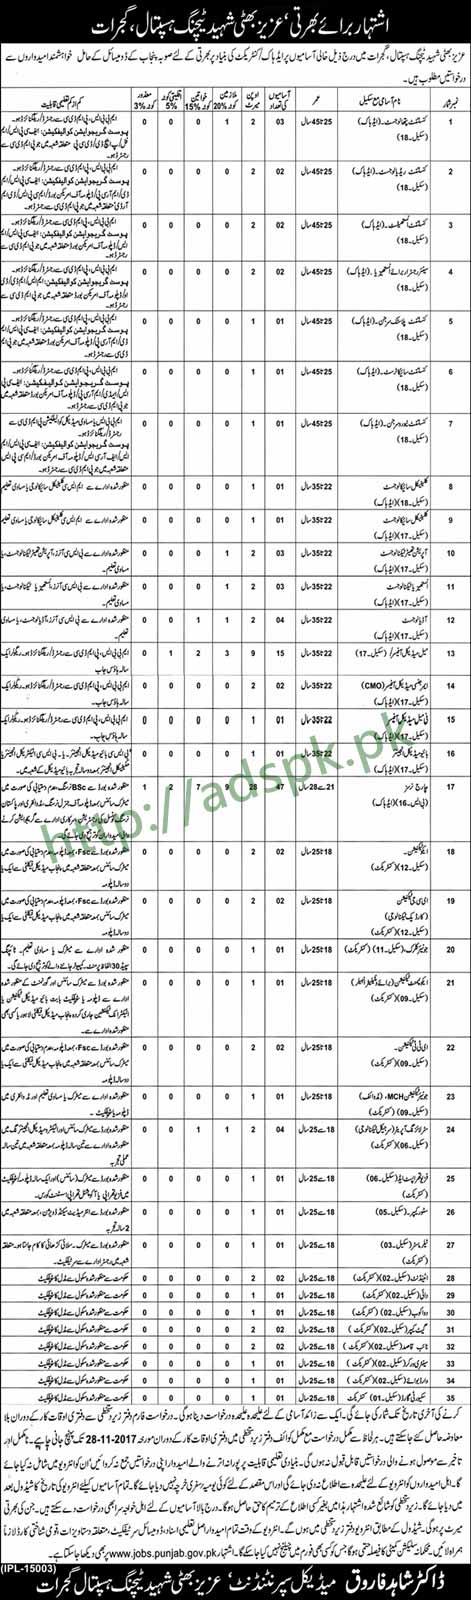 Aziz Bhatti Shaheed Teaching Hospital Gujrat Jobs 2017 Consultants Medical Officers Charge Nurses Technicians Jobs Application Deadline 28-11-2017 Apply Now